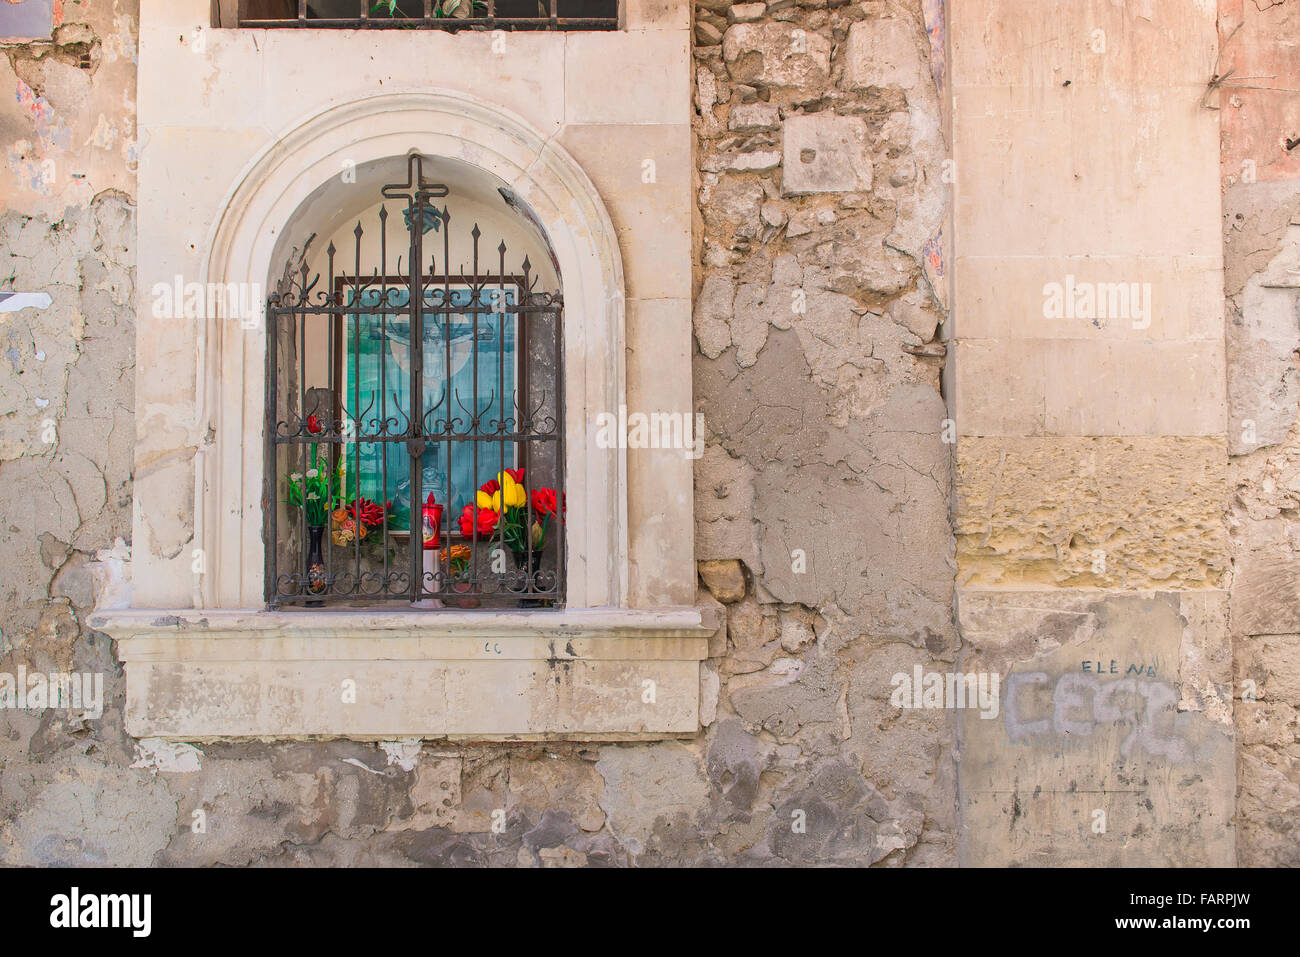 Shrine wall italy, view of a neighbourhood shrine set into an old wall in the Old Town (Centro Storico) area of - Stock Image